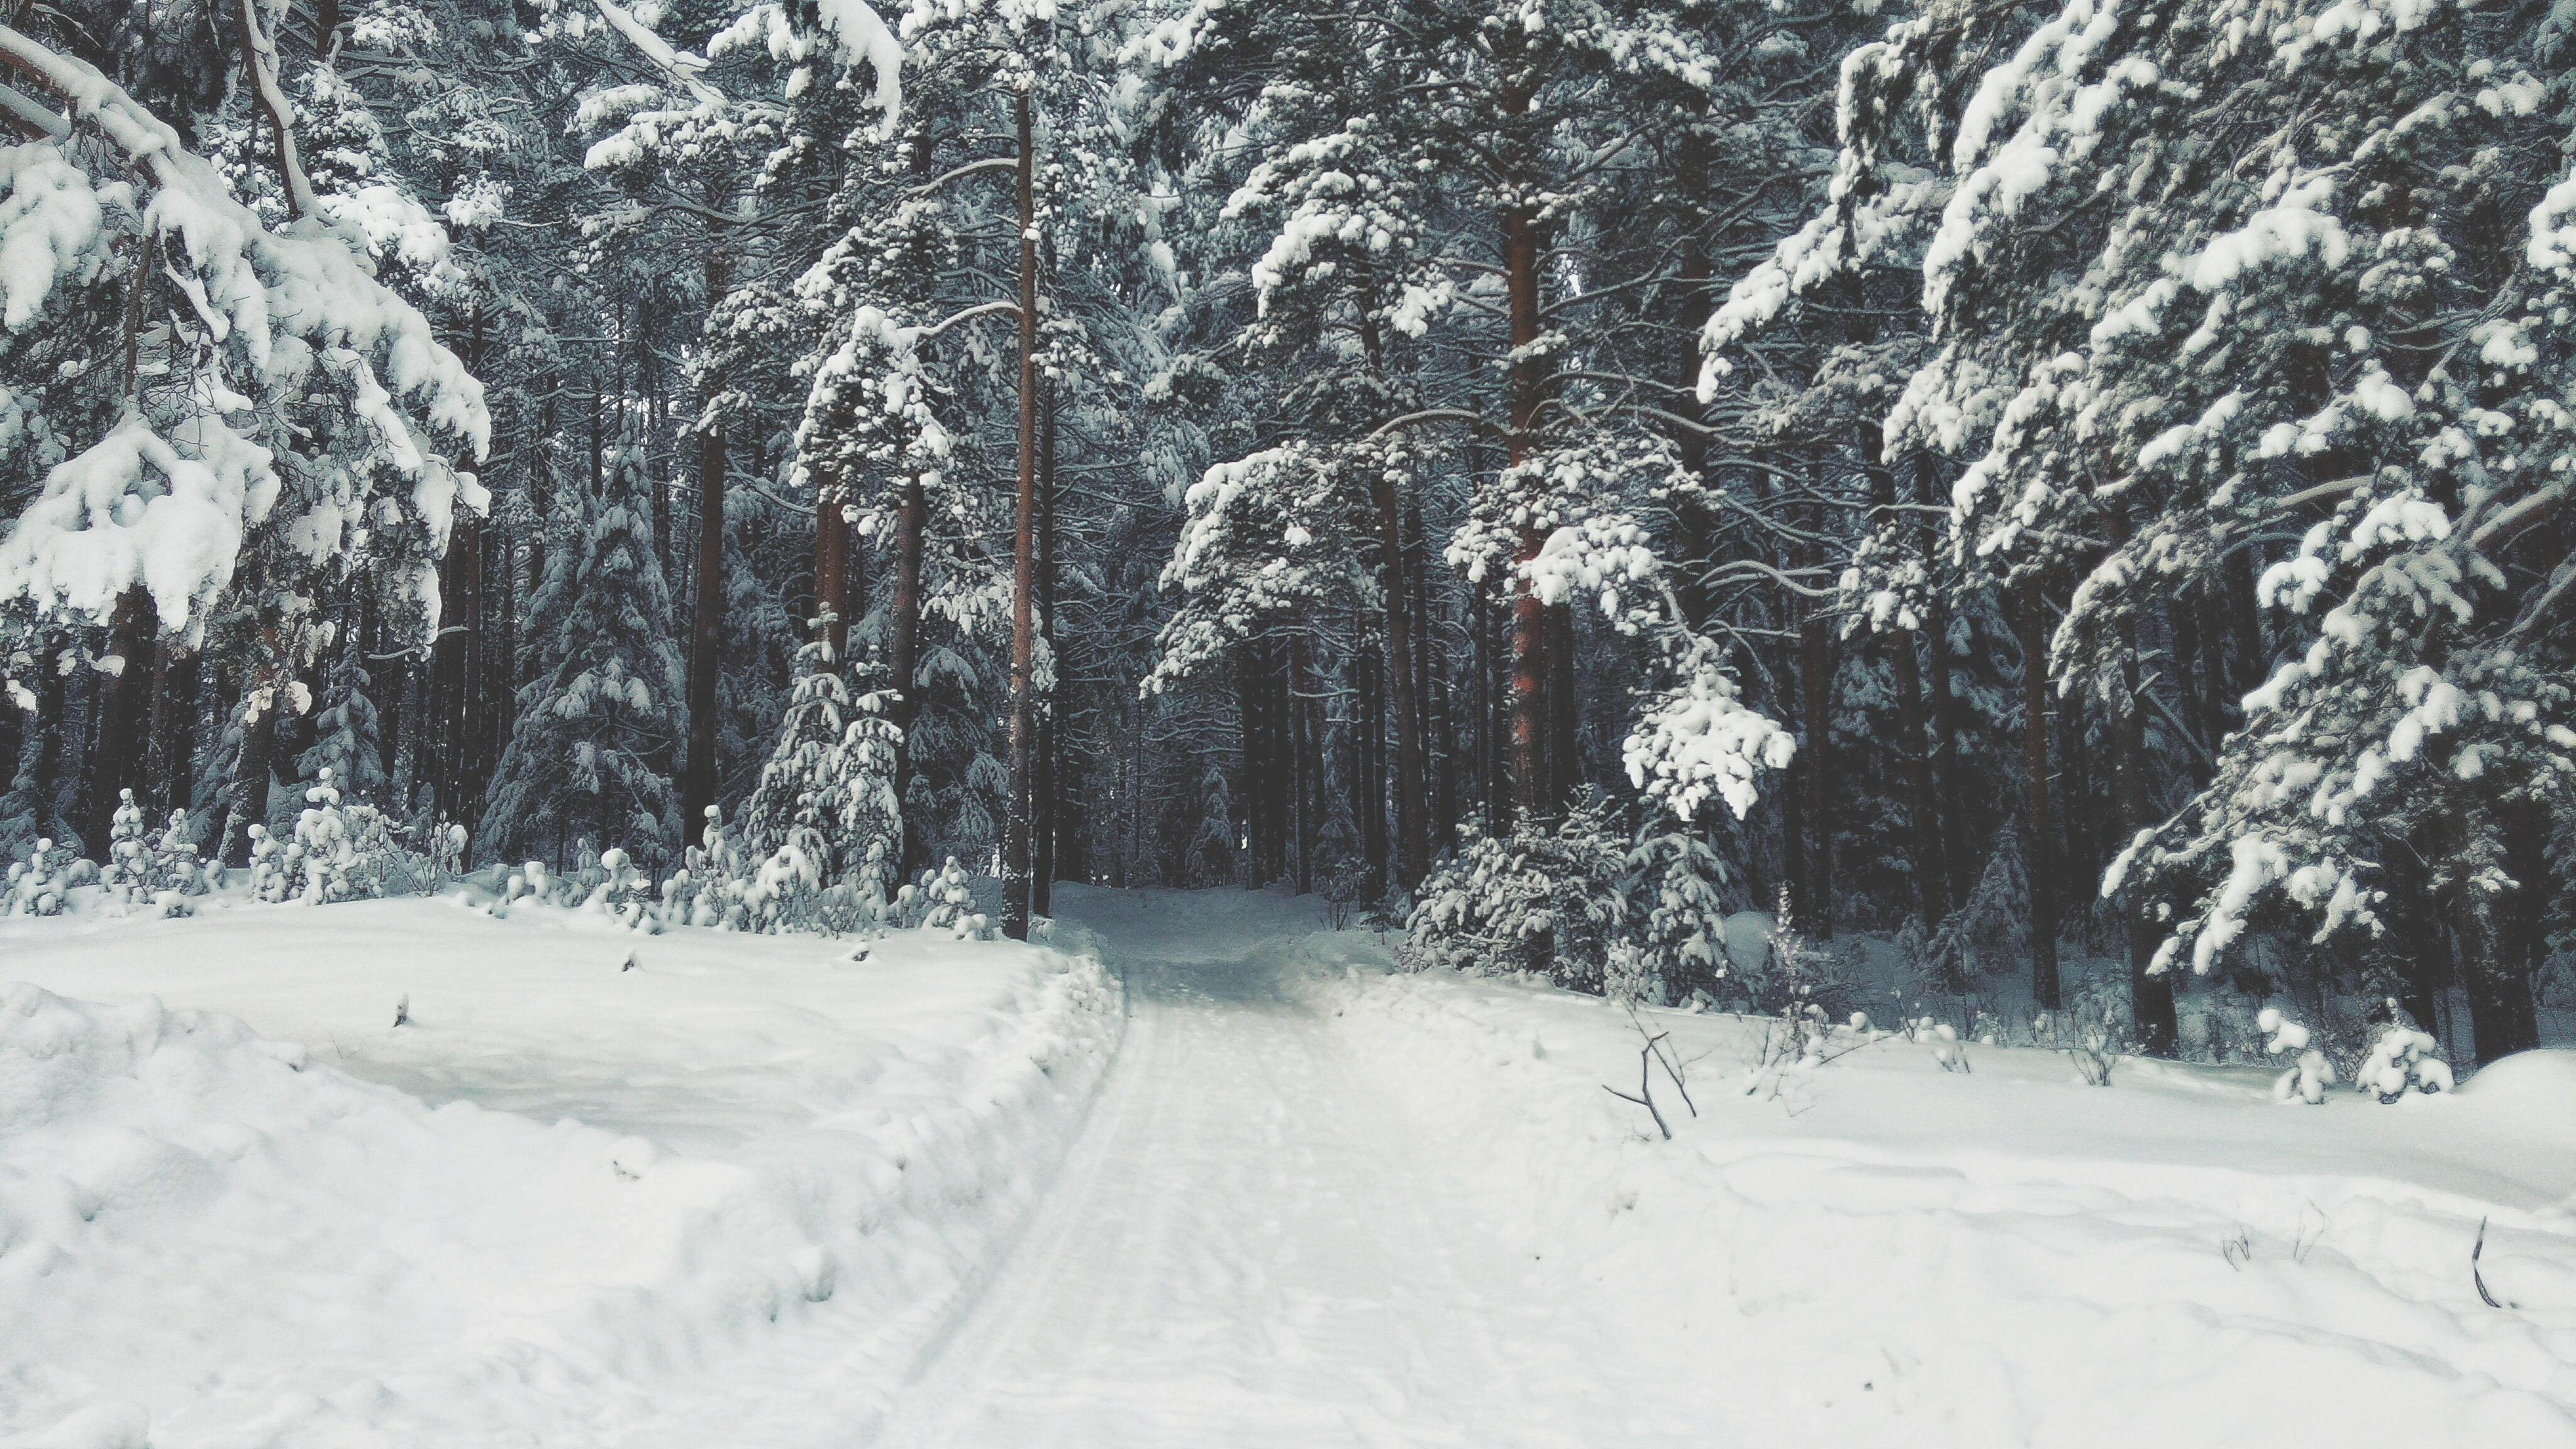 A path in the woods covered in a thick layer of snow